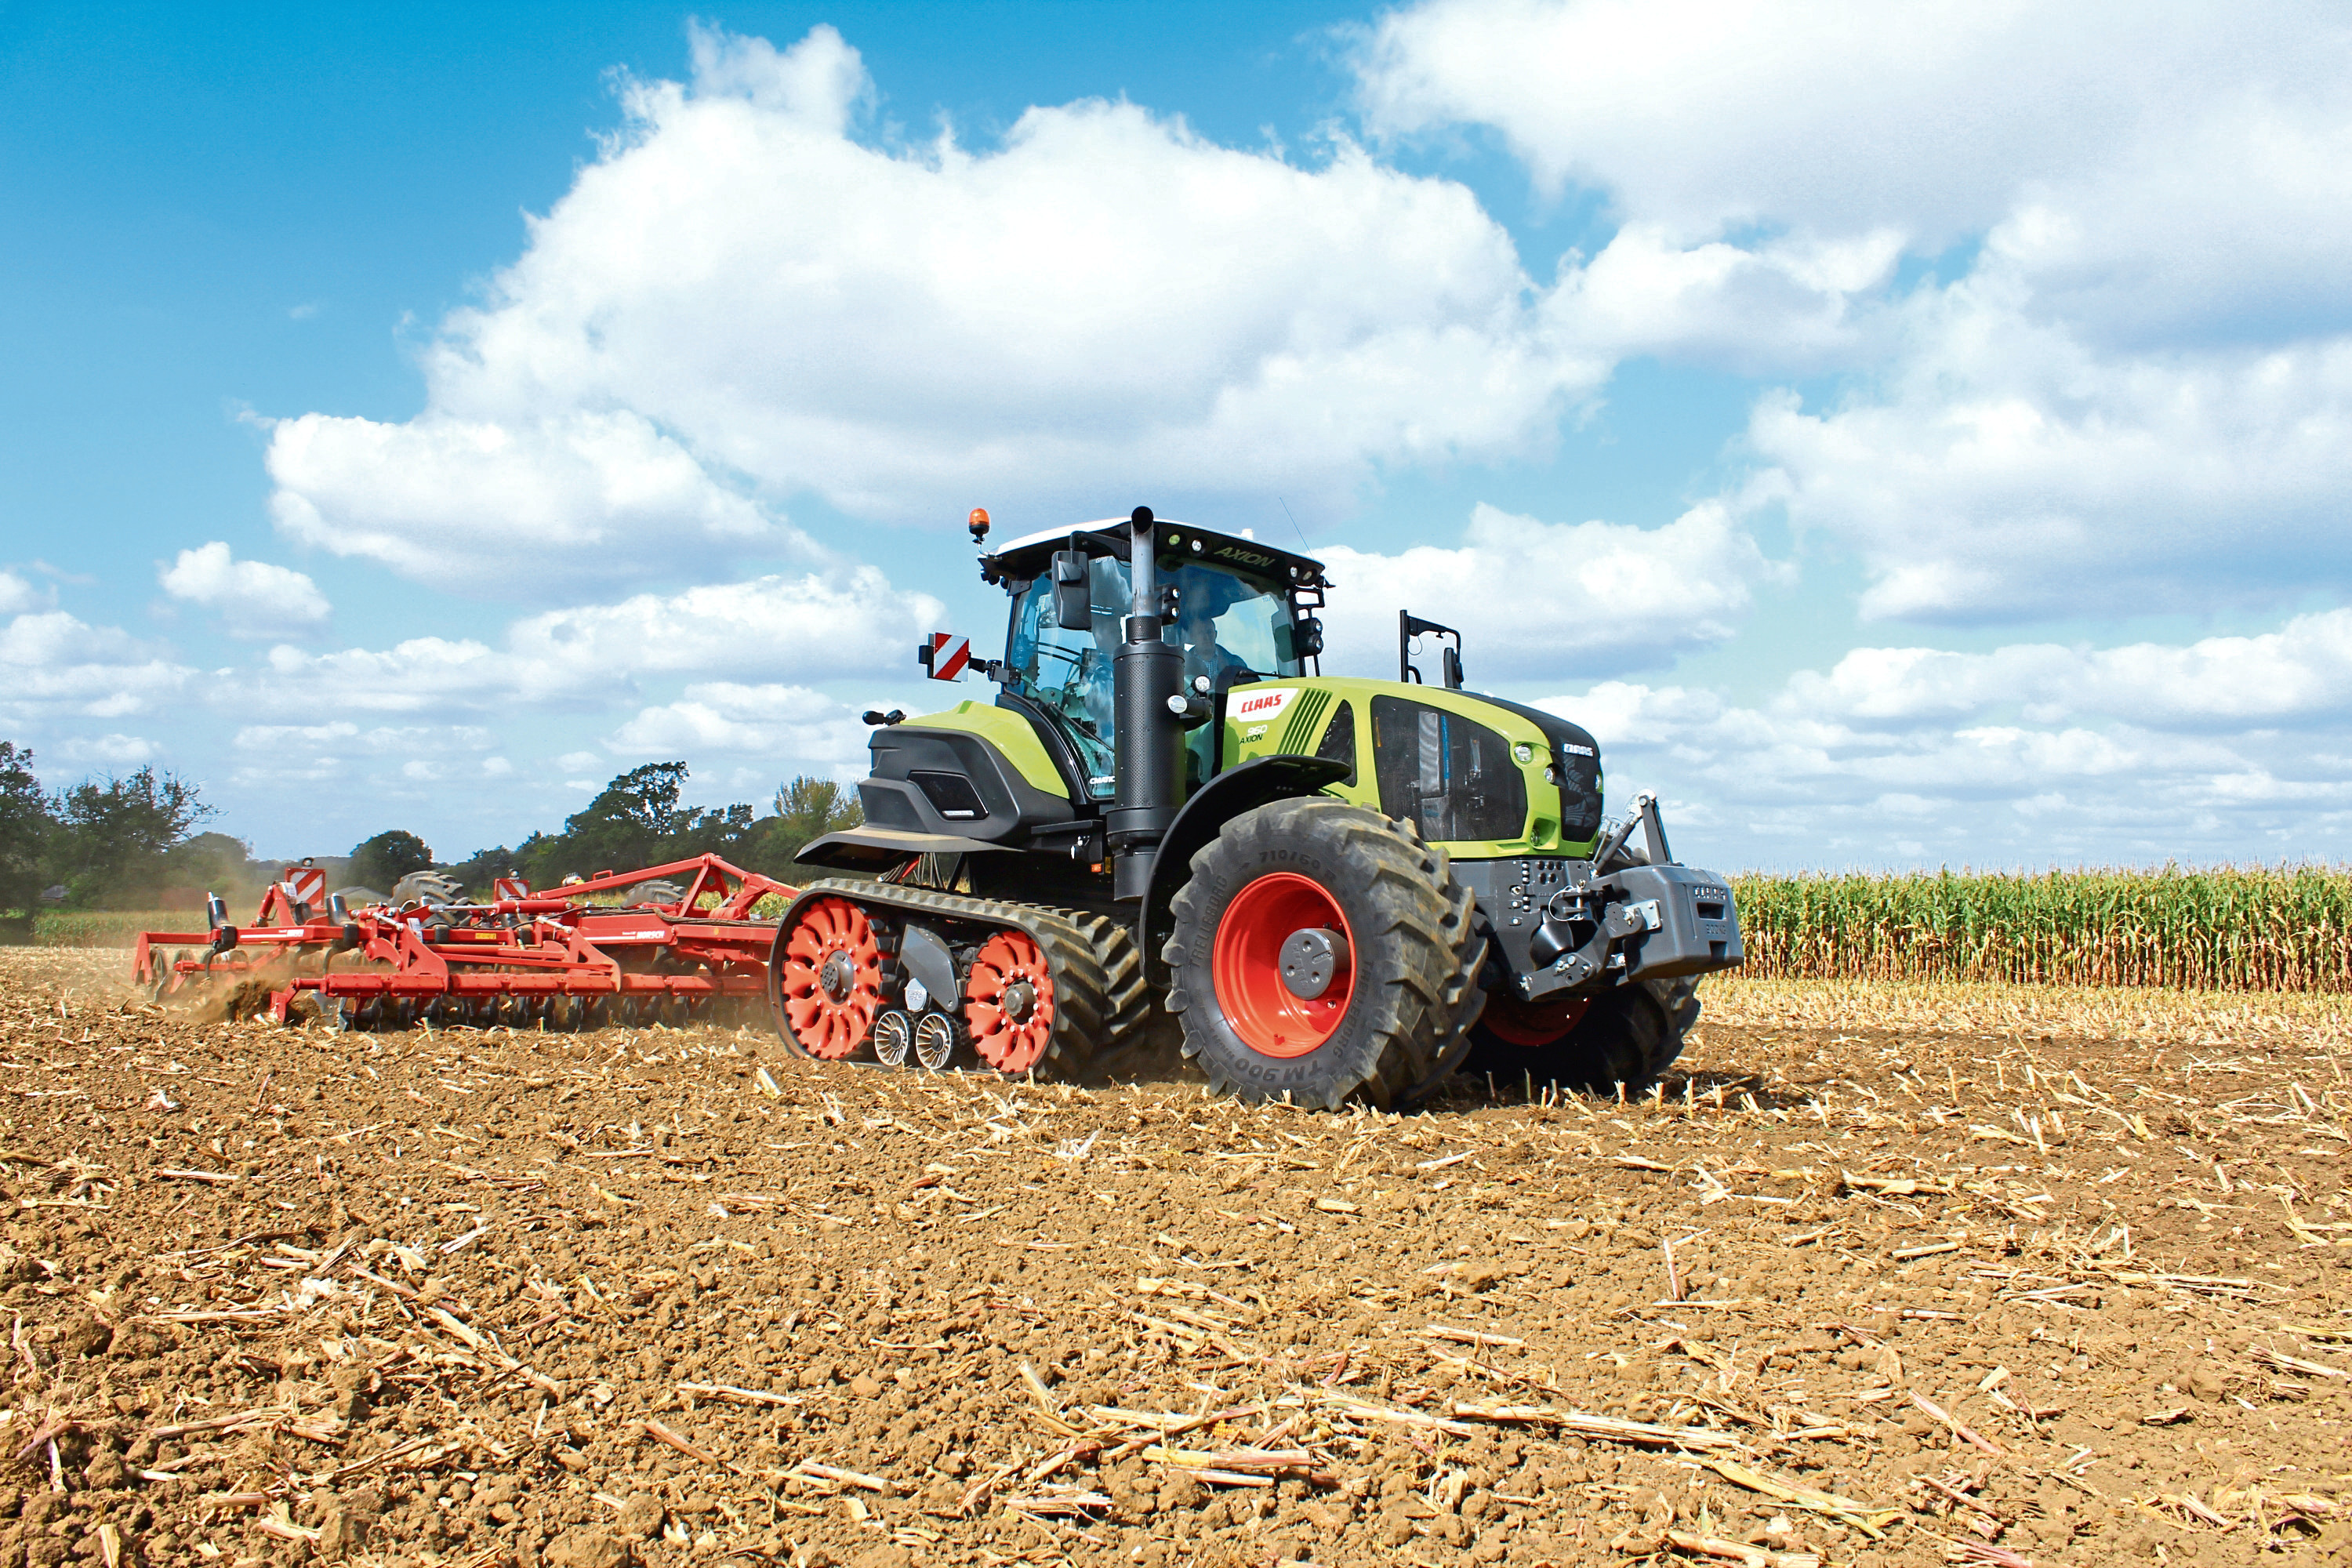 Terra Trac assemblies on the Claas Axion 900 have a larger diameter drive wheel, full suspension and can pivot individually over an undulating surface.